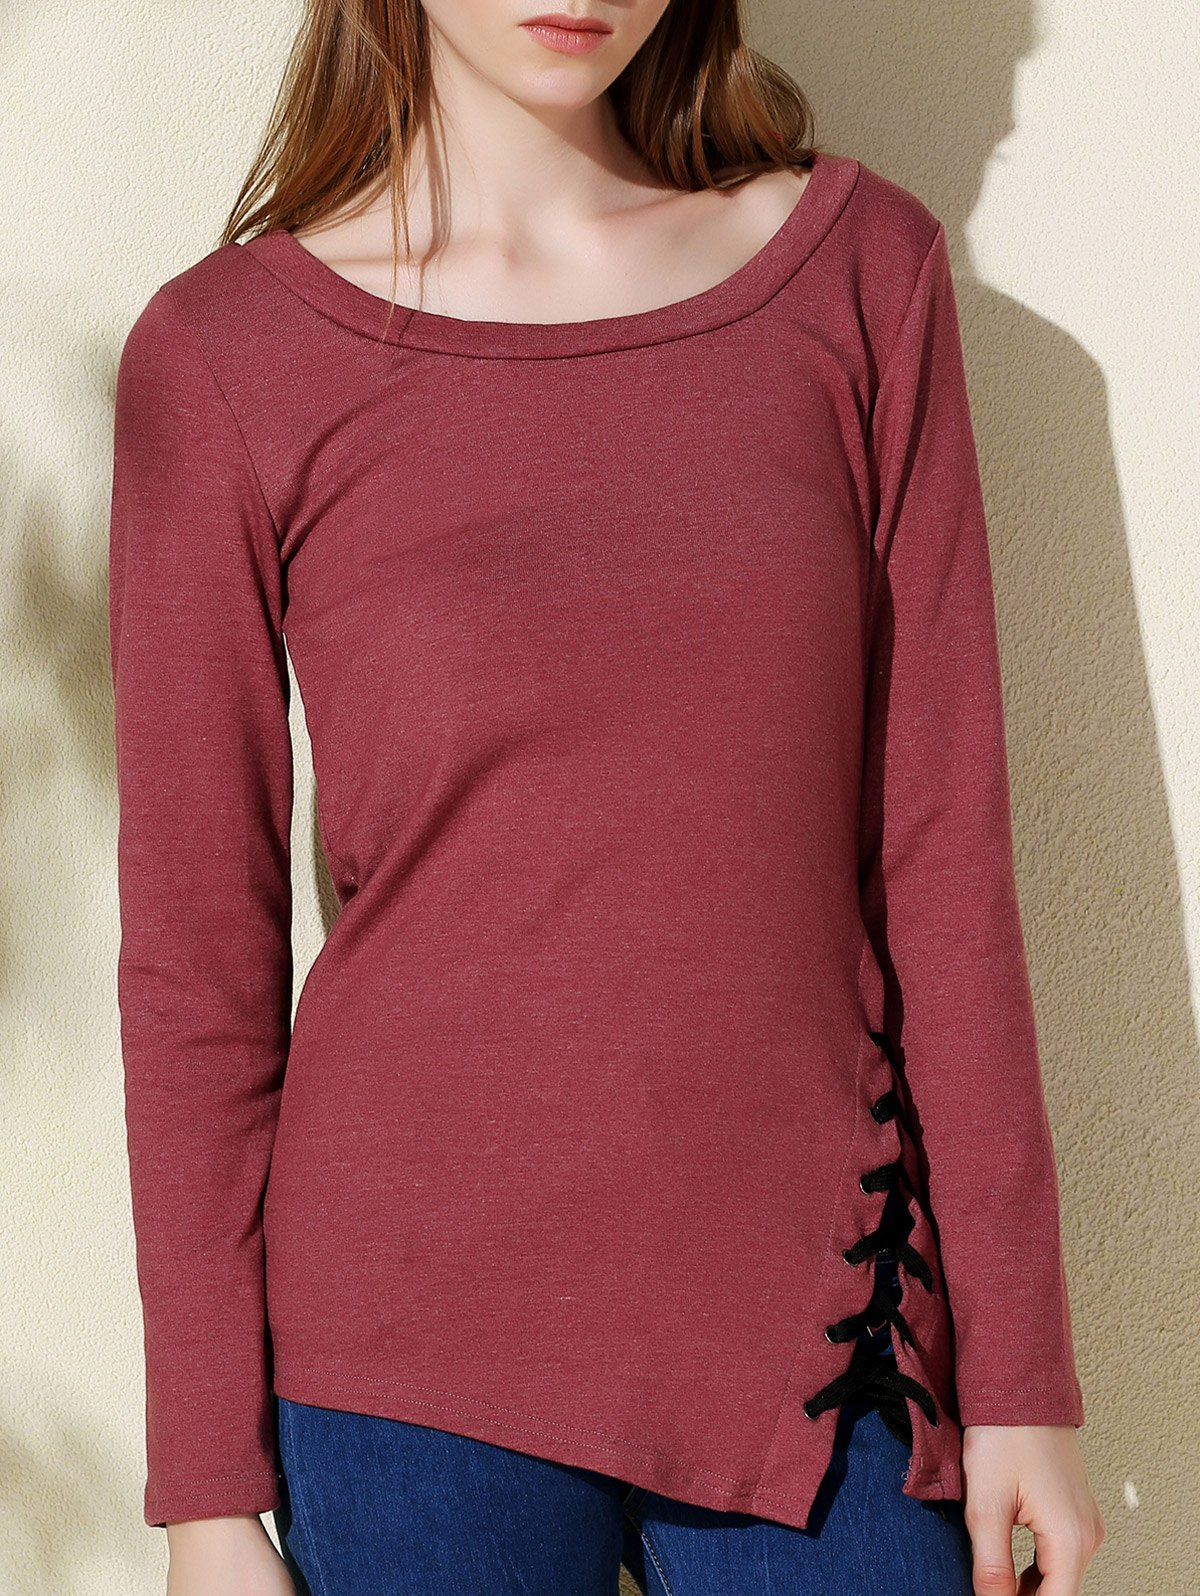 Stylish solid color scoop neck long sleeve t shirt for for Scoop neck long sleeve shirt